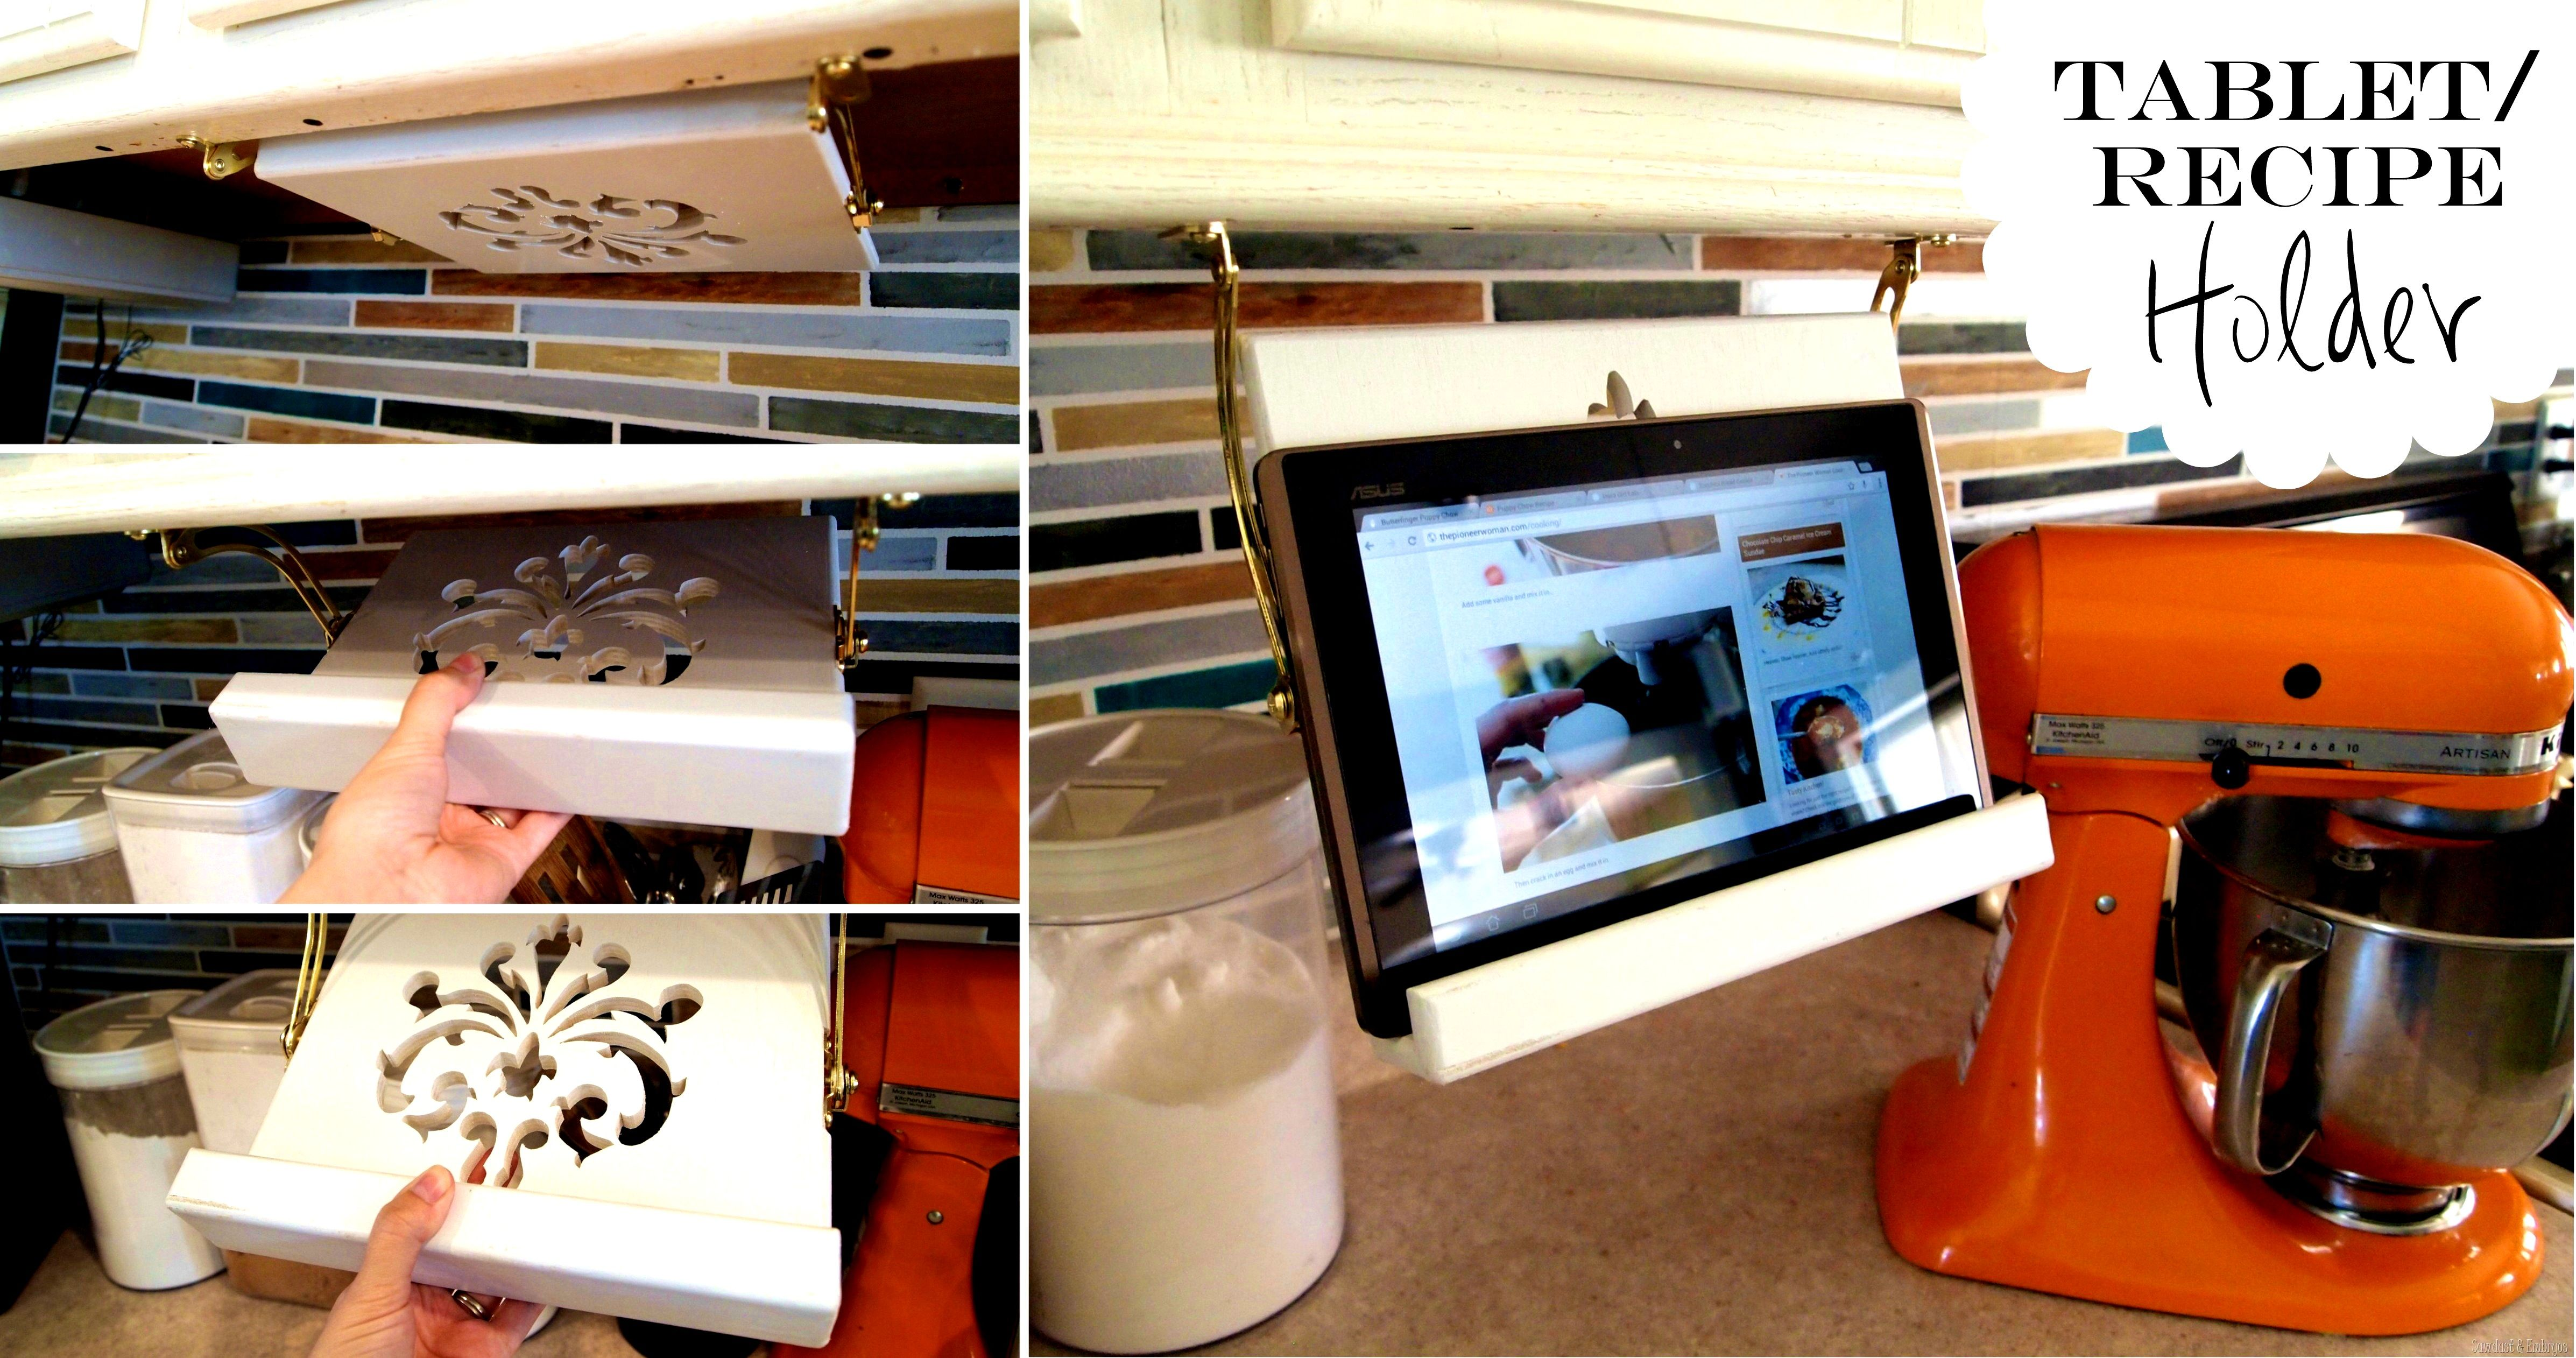 Tablet stand for kitchen  AccessoriesBreathtaking Diy Tabletrecipe Book Holder Under Cabinets